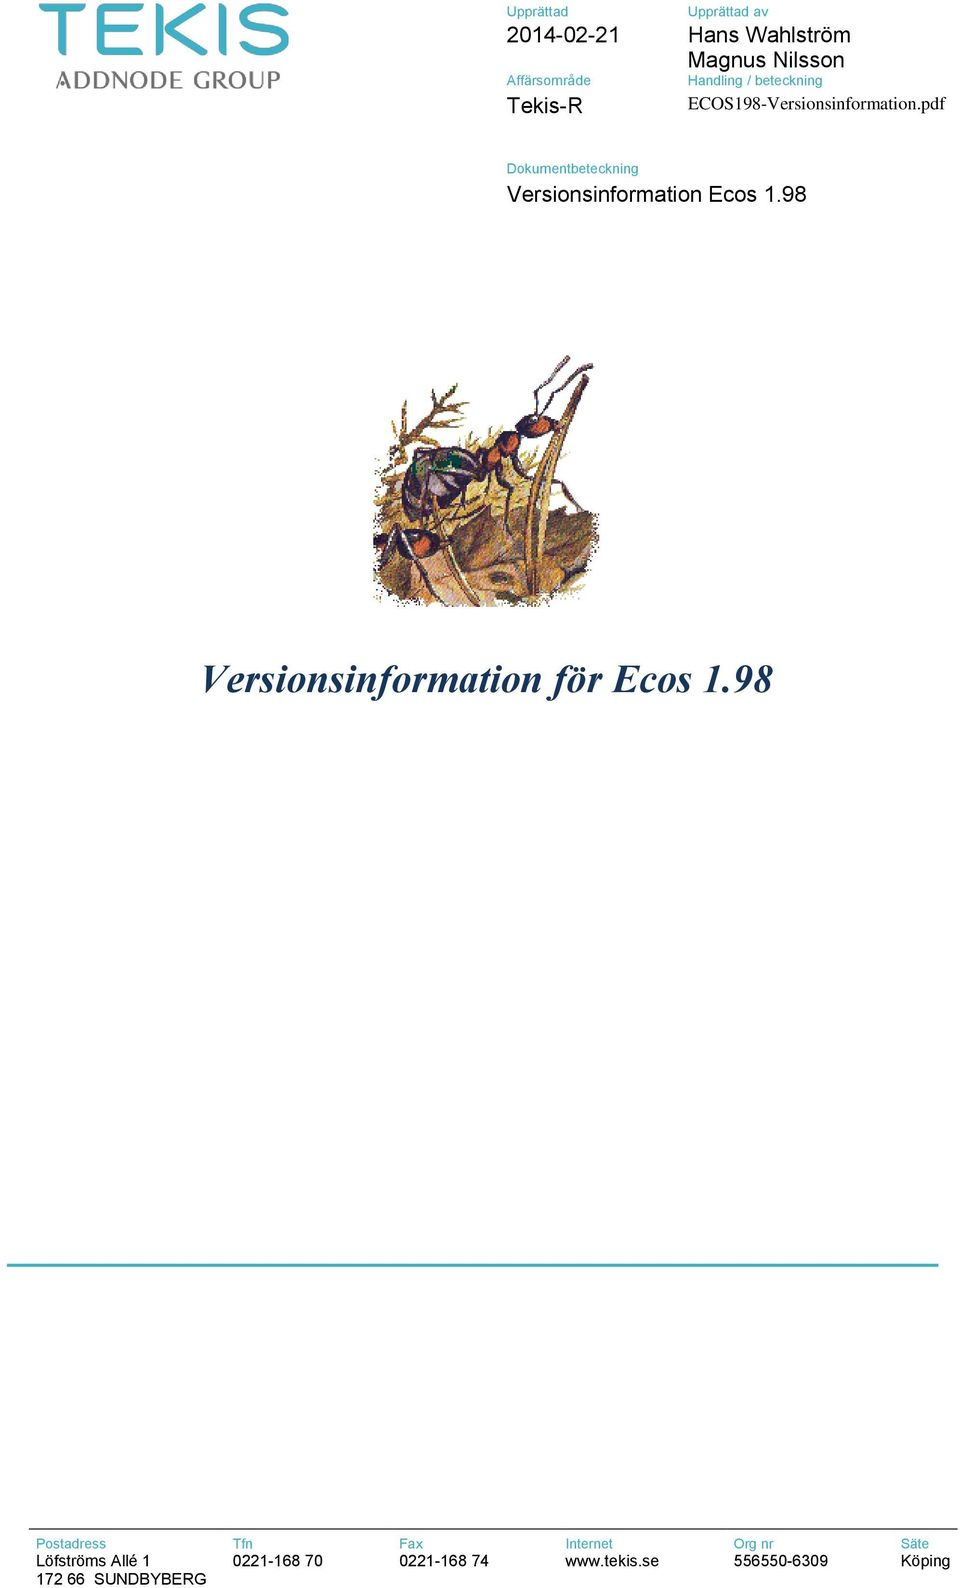 pdf Dokumentbeteckning Versionsinformation Ecos 1.98 Versionsinformation för Ecos 1.